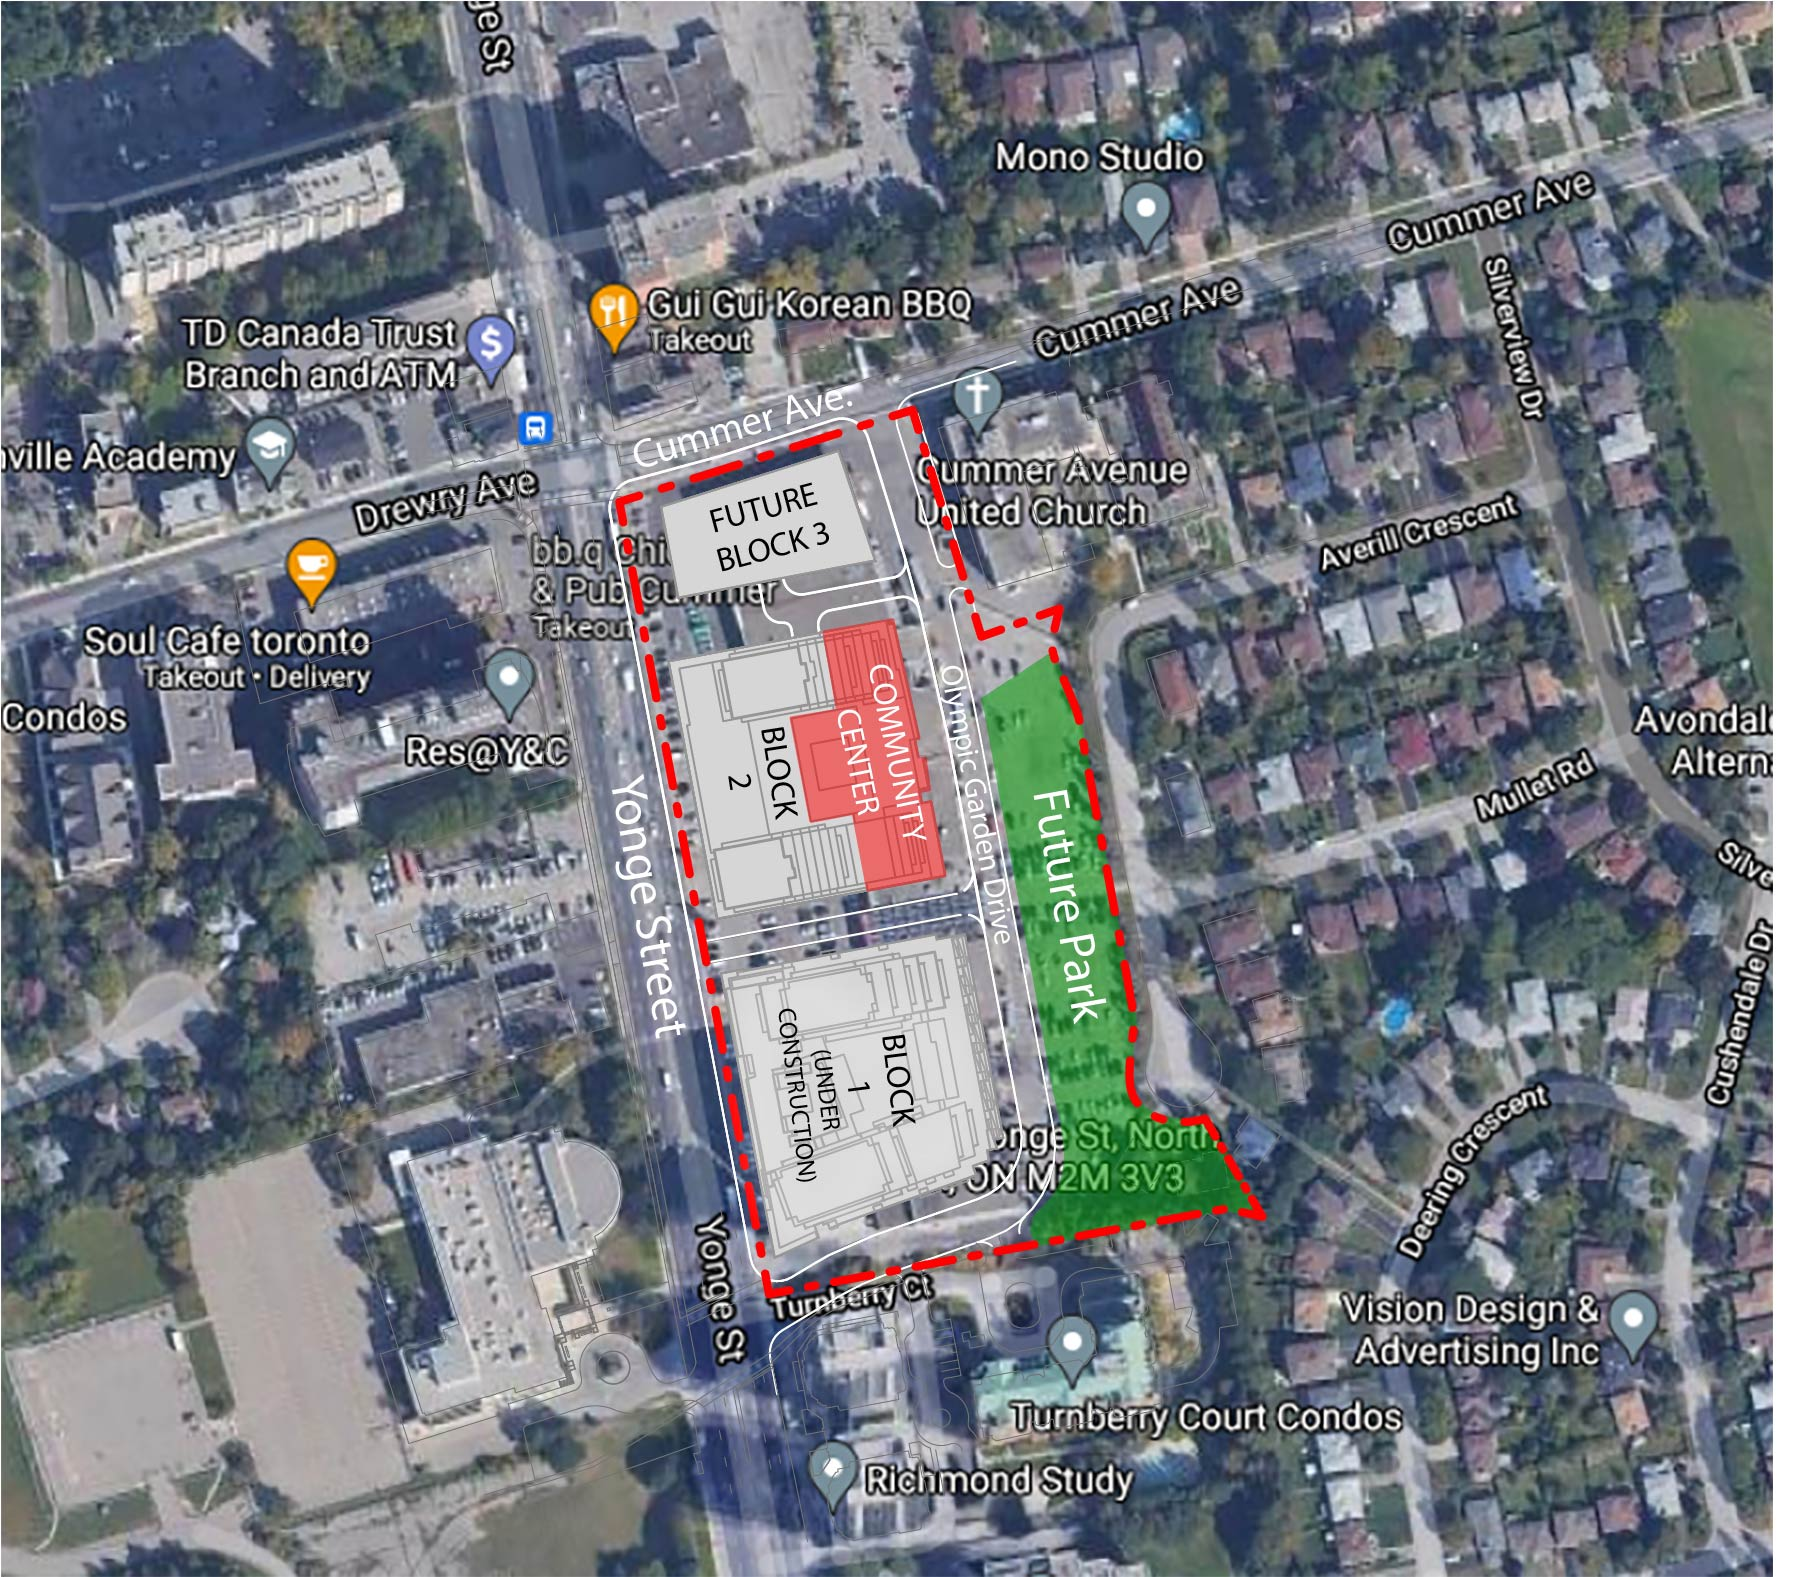 An aerial location map showing the location for the new Newtonbrook Community Recreation Centre, shown in red. The community centre will be located just south of Cummer Avenue and can be accessed from Yonge Street or a new residential street names Olympic Garden Drive. The development site is outlined in red and includes a park, shown in green, which is across from the community centre on Olympic Garden Drive.